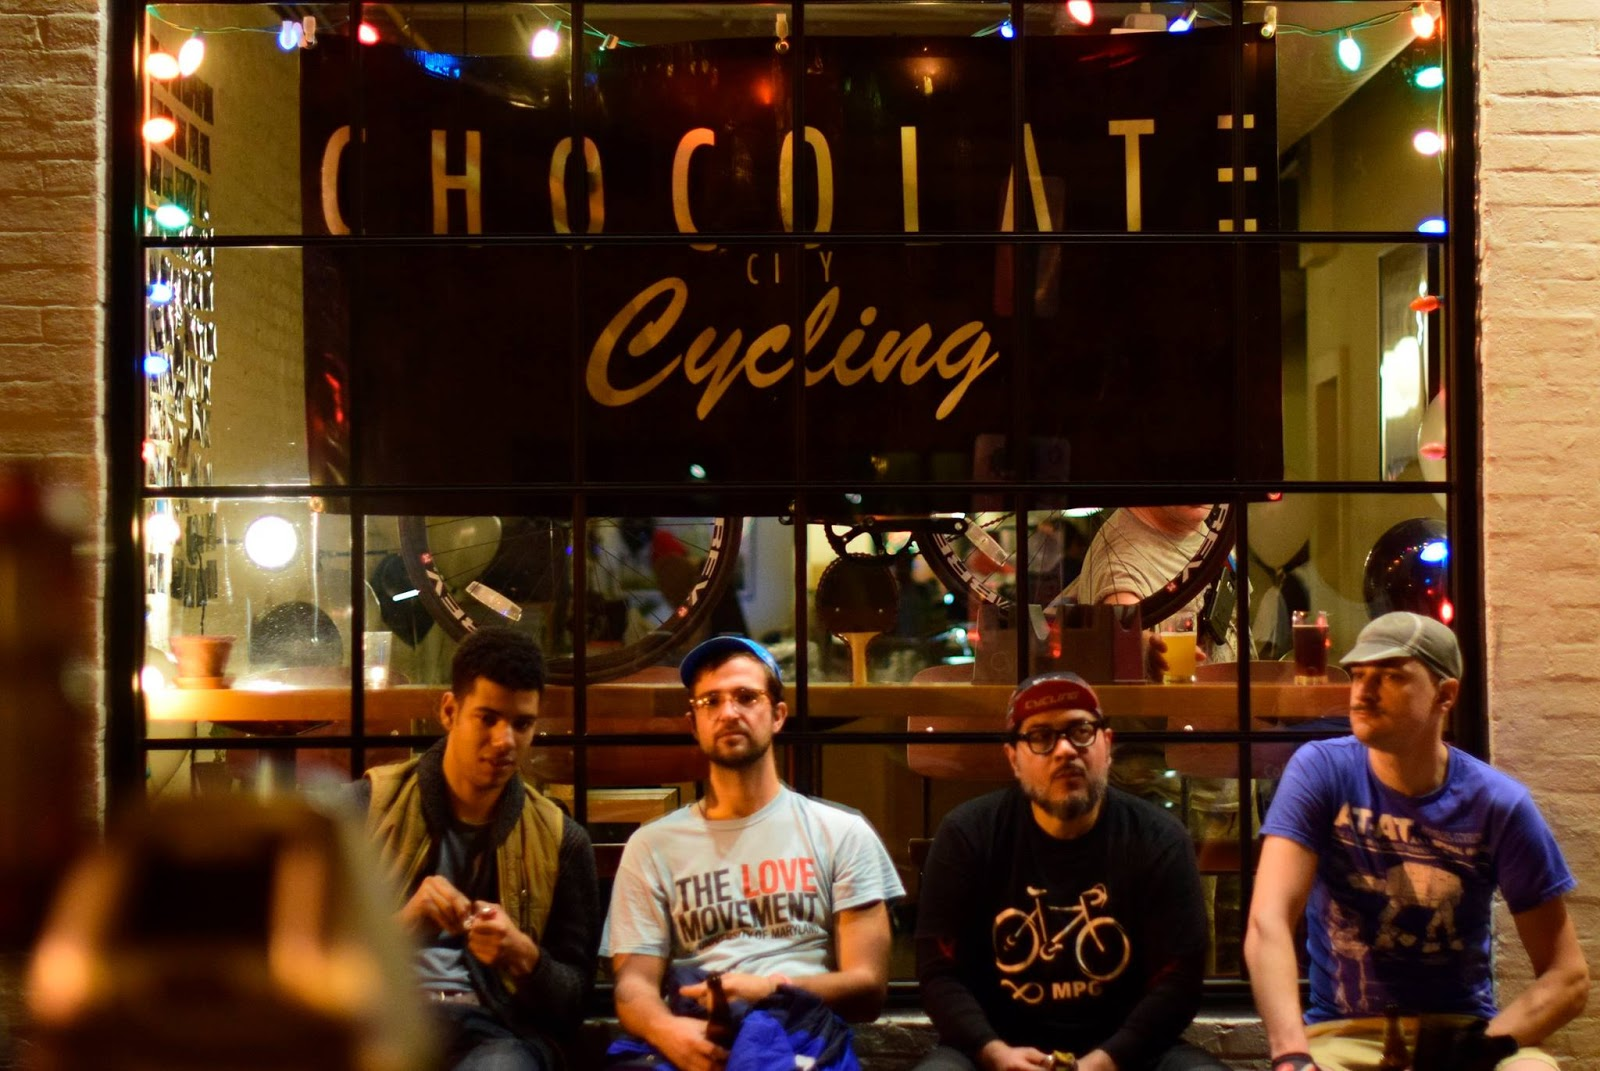 gwadzilla: Chocolate City Cycling threw an AWESOME party this ...